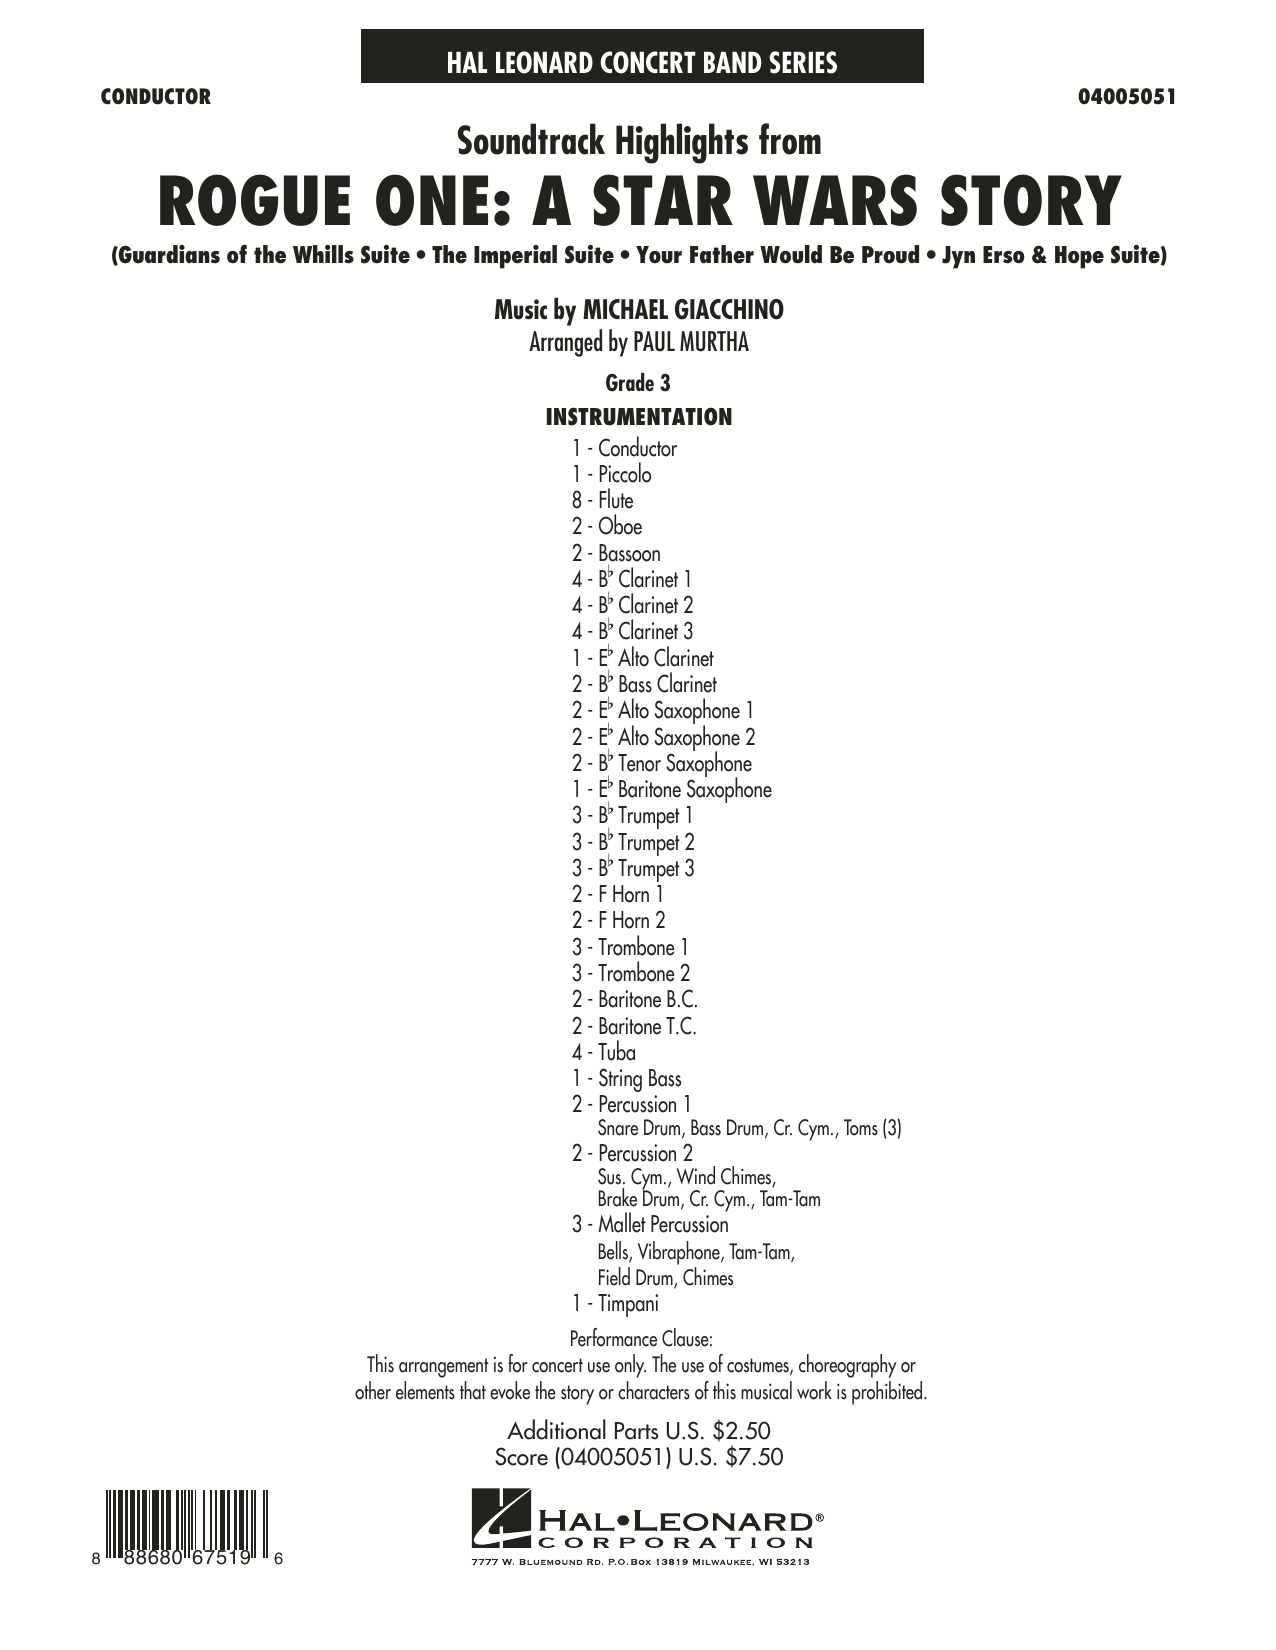 Paul Murtha Rogue One: A Star Wars Story - Conductor Score (Full Score) sheet music preview music notes and score for Concert Band including 24 page(s)